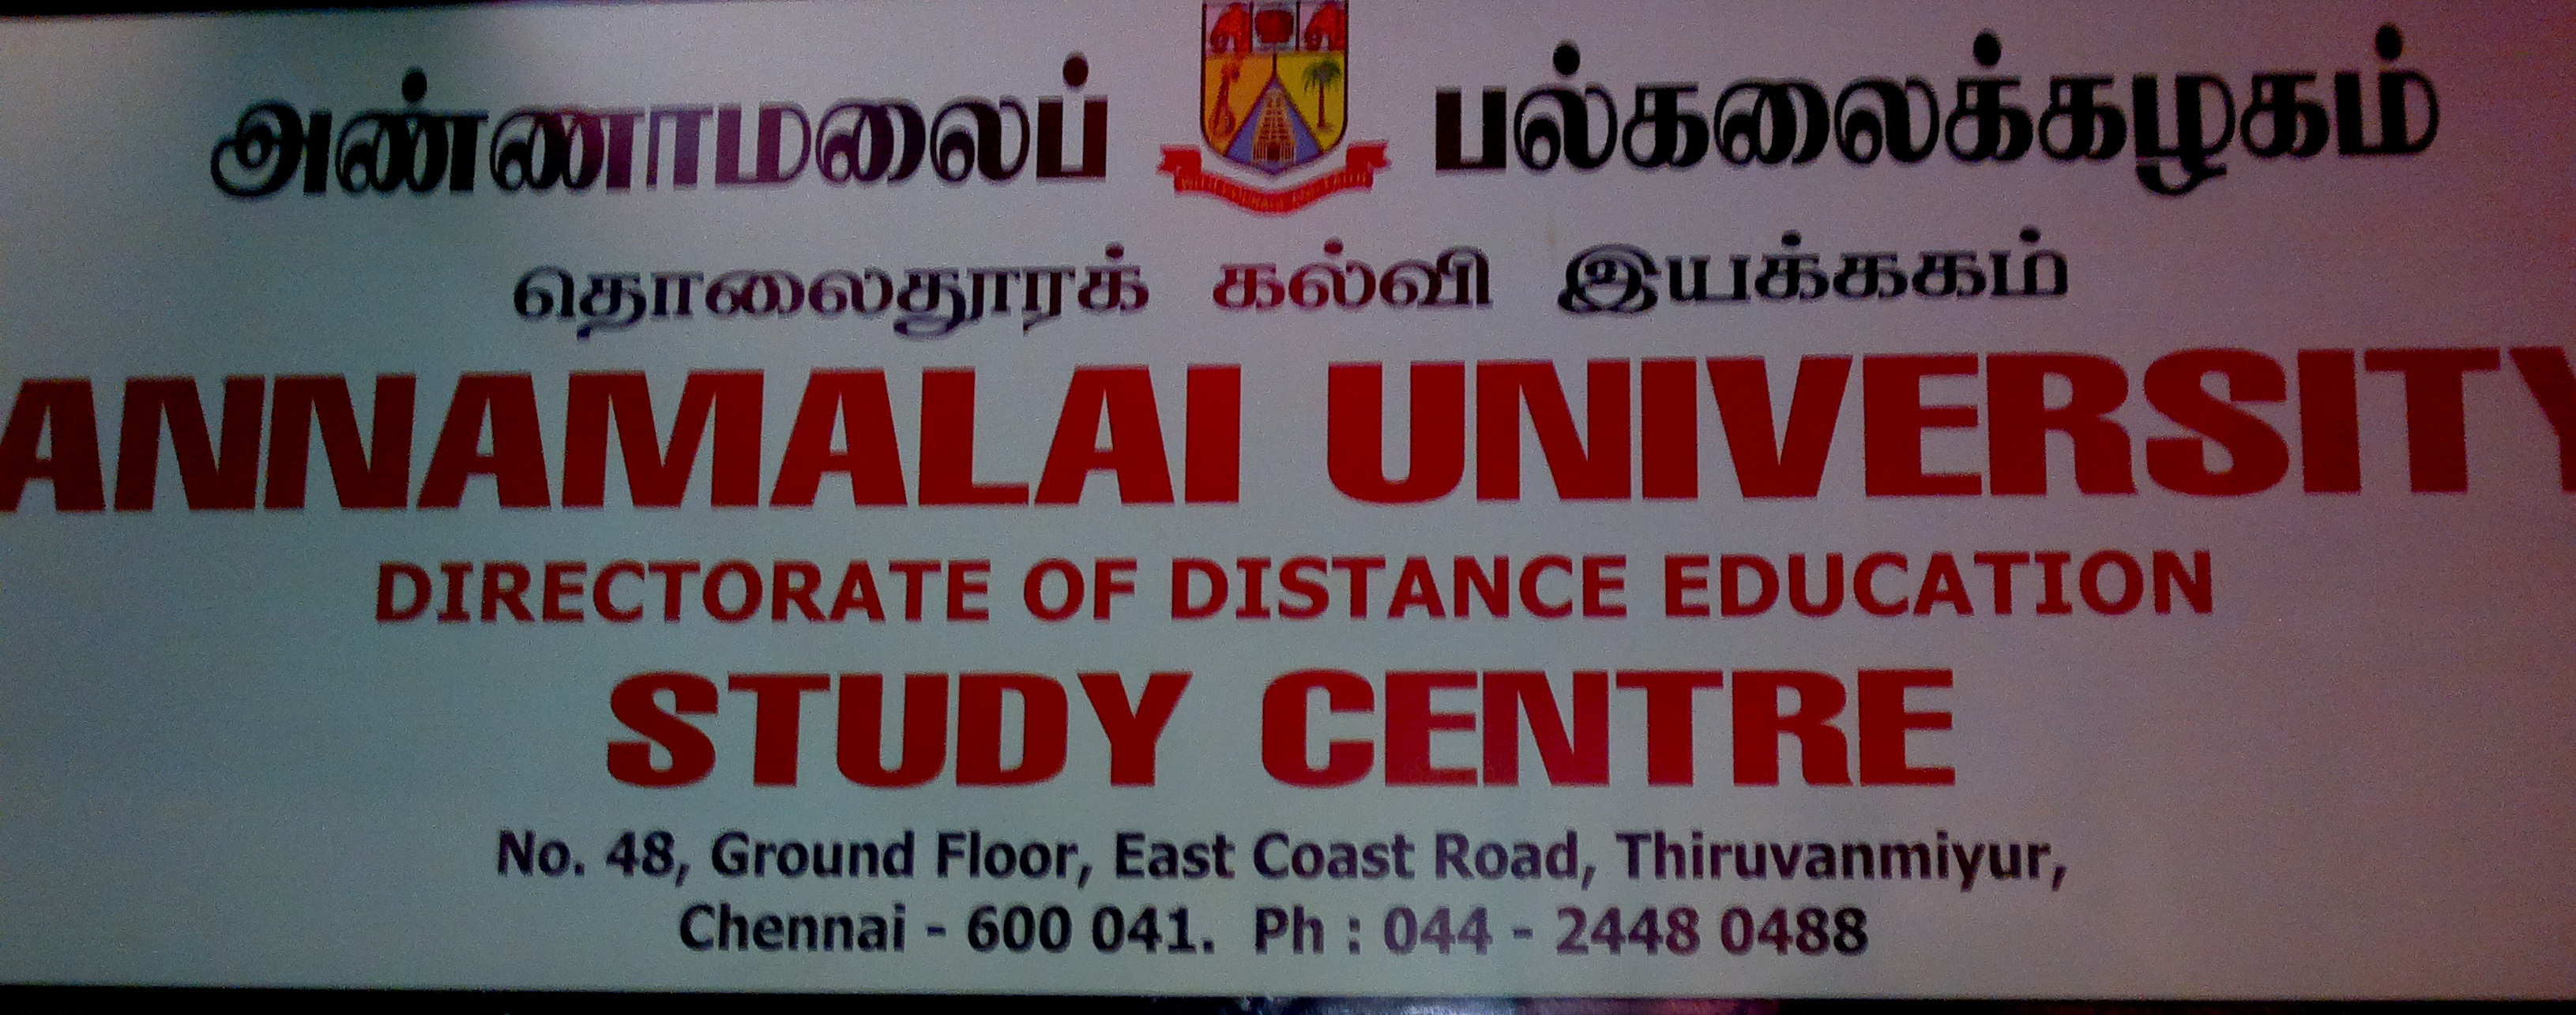 Annamalai university distance education study centre thiruvanmiyur